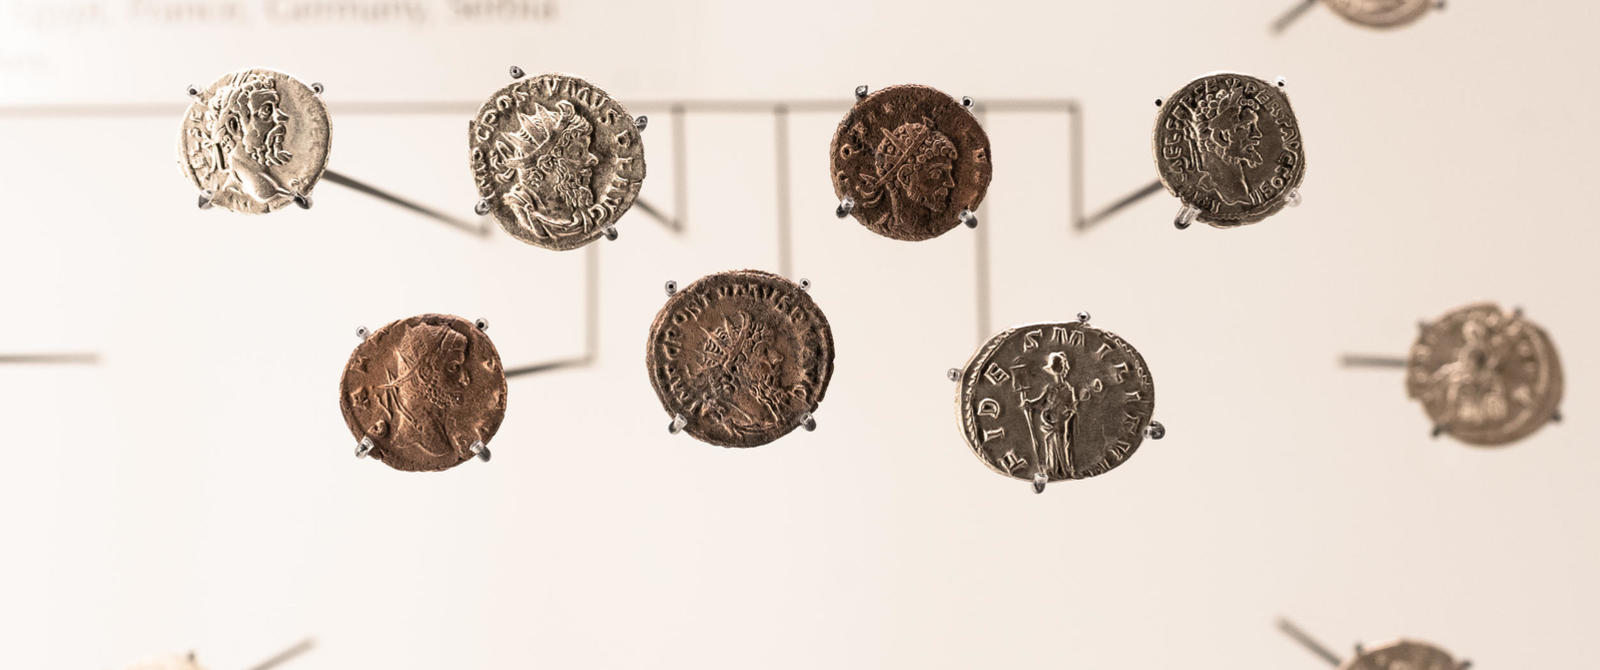 Image: Coins from the Beau Street Hoard